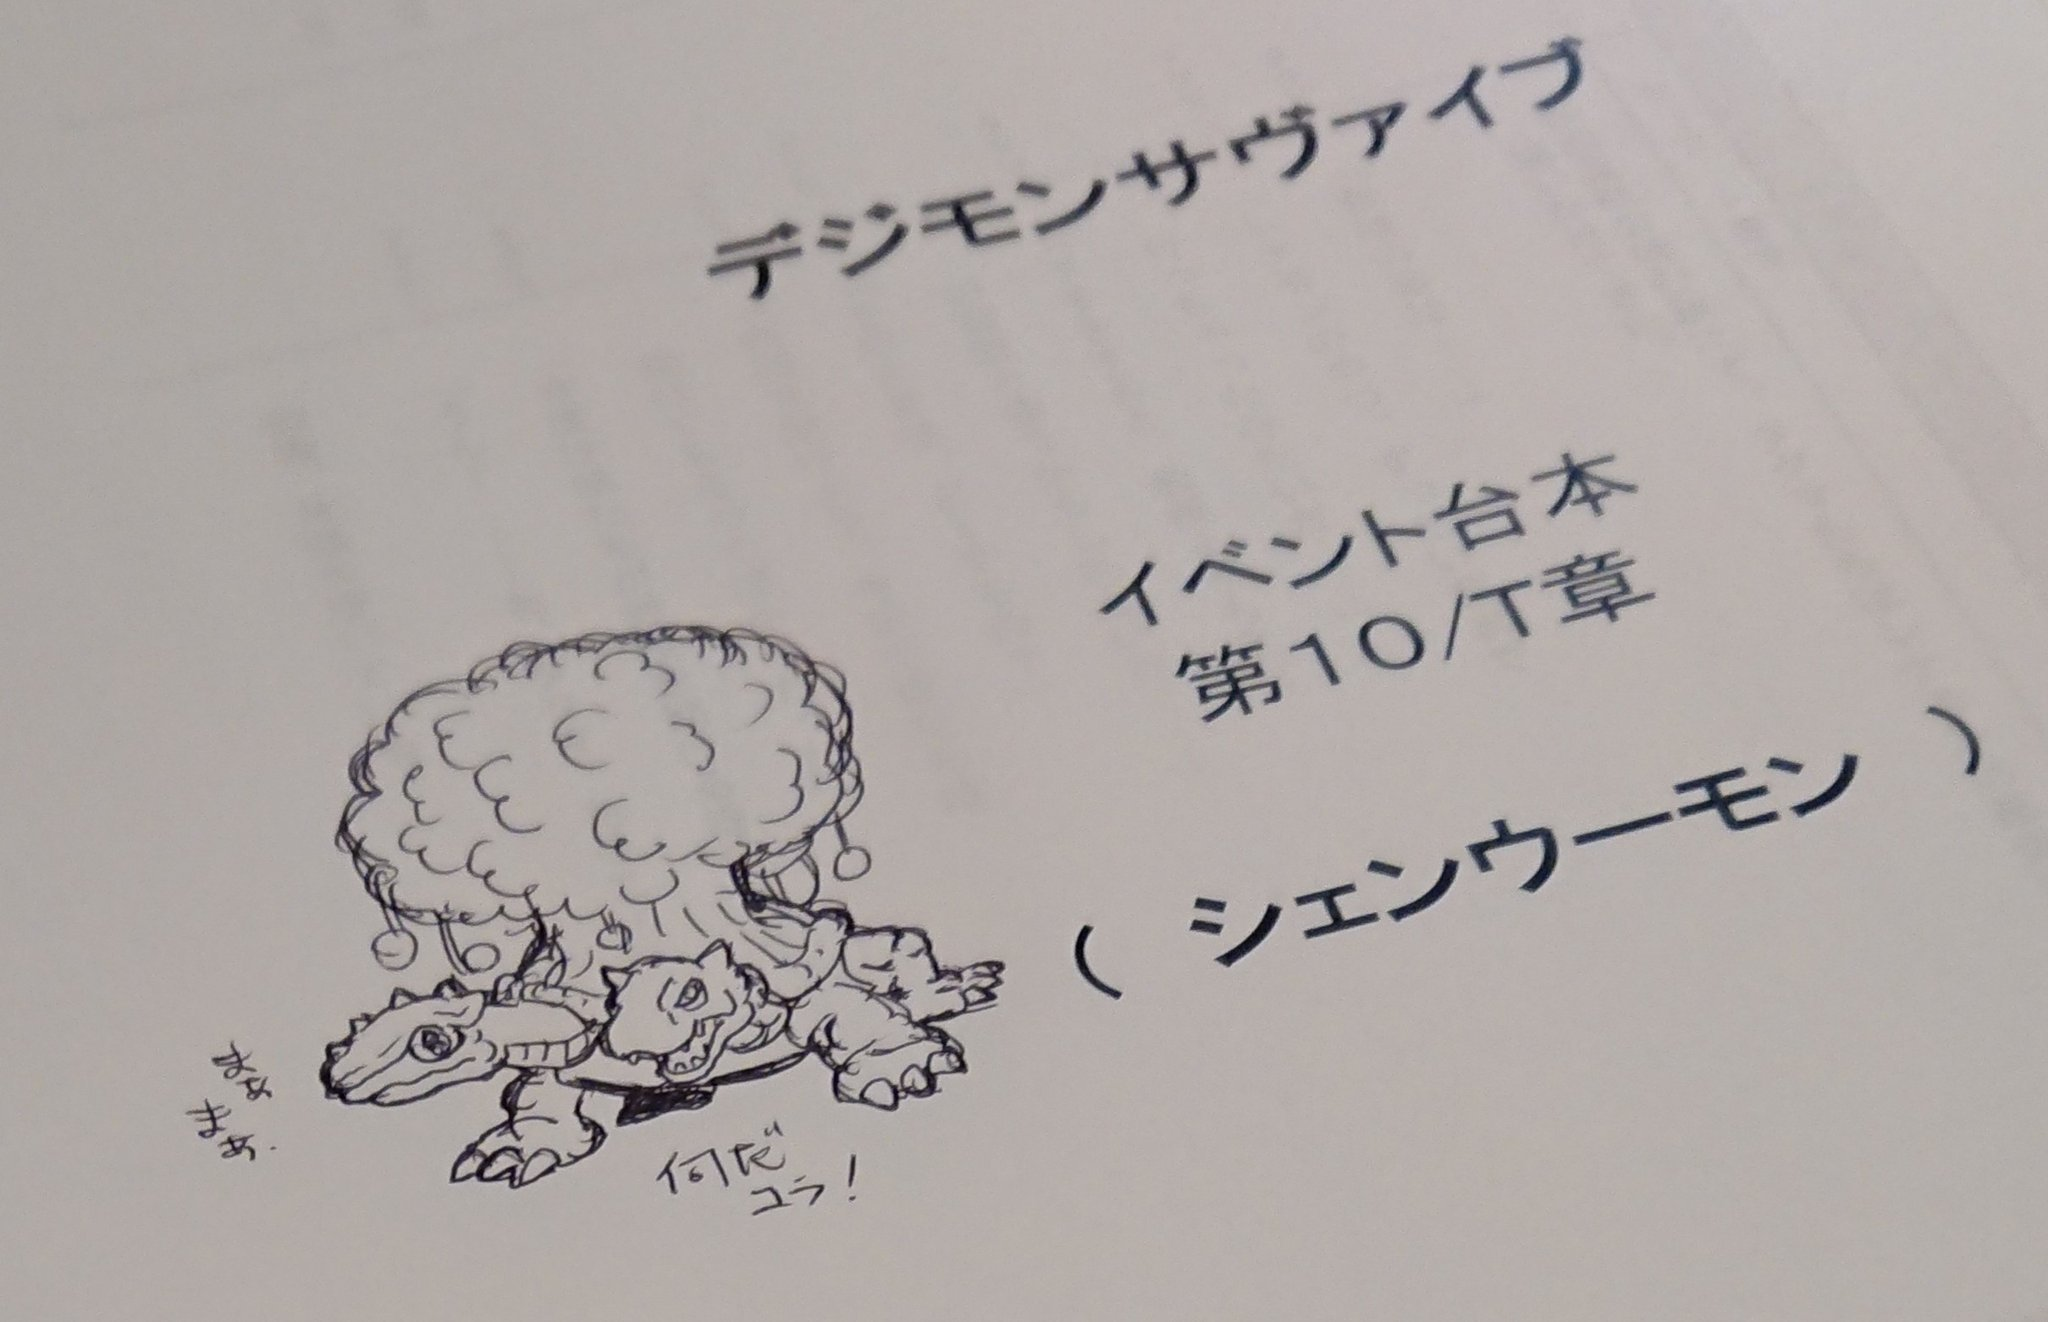 Xuanwumon to appear in Digimon Survive - Gematsu